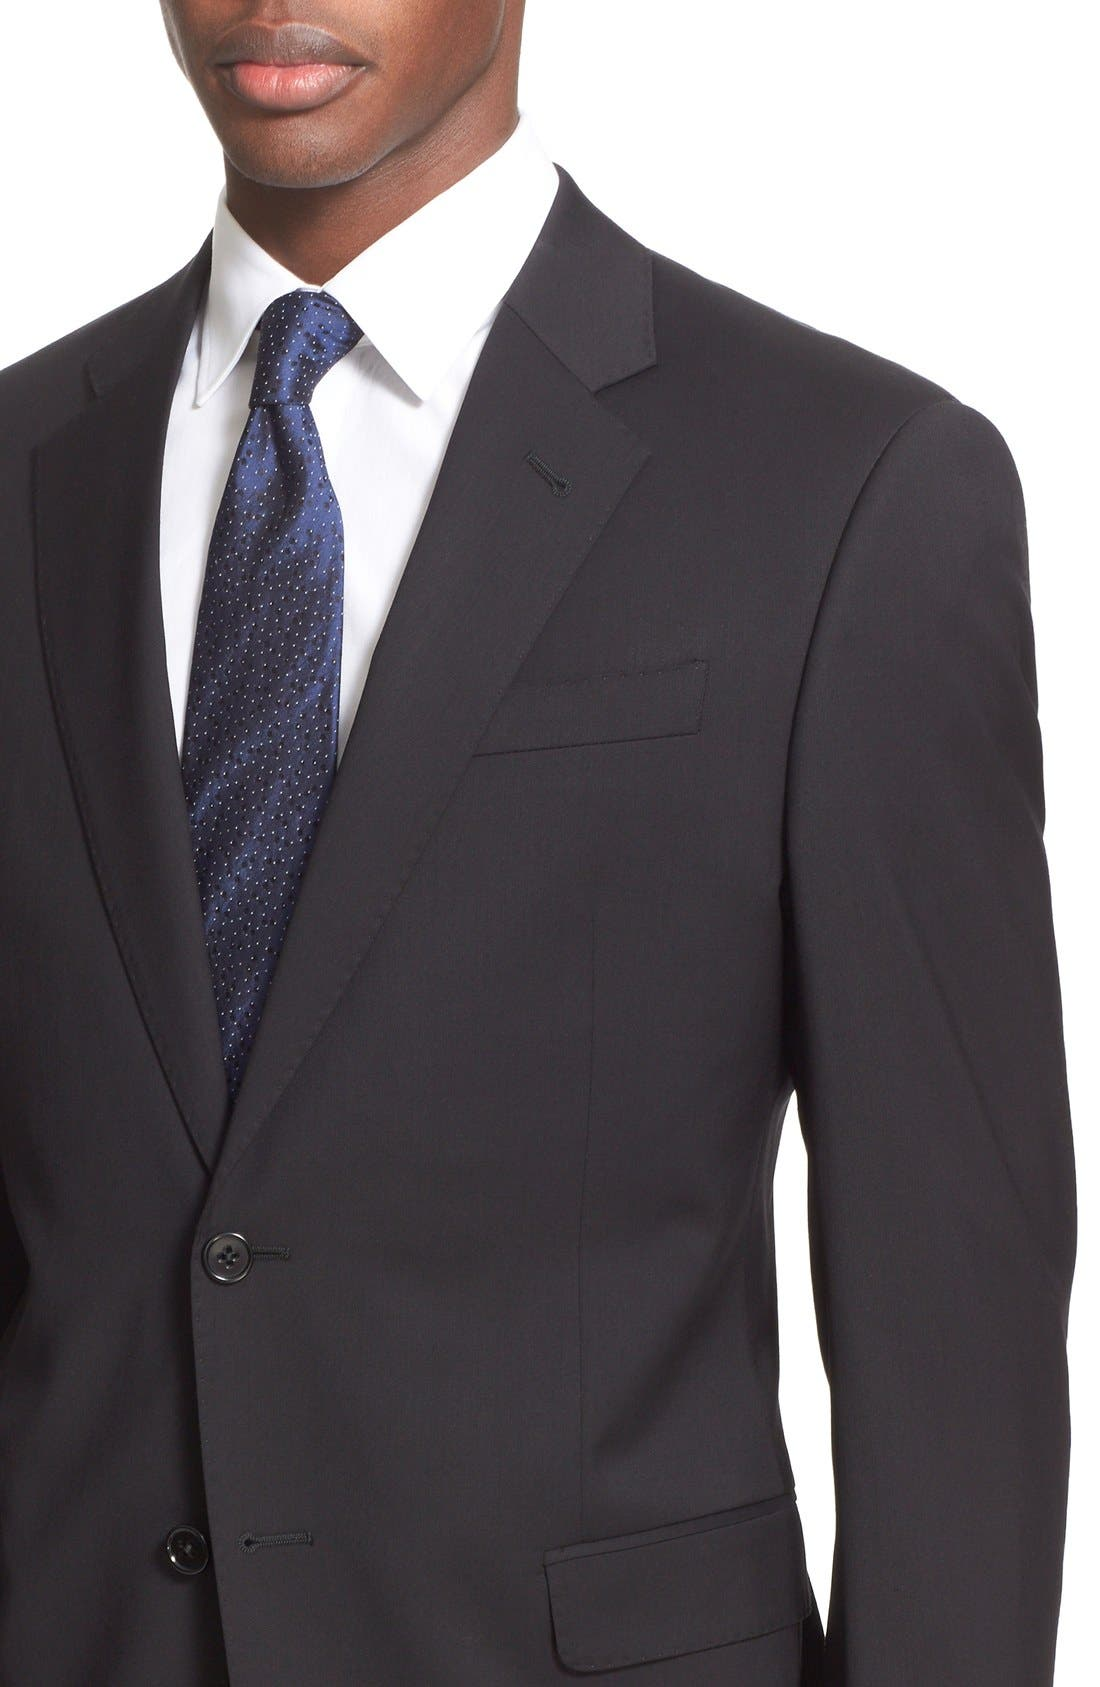 G-Line Trim Fit Solid Wool Suit,                             Alternate thumbnail 2, color,                             001